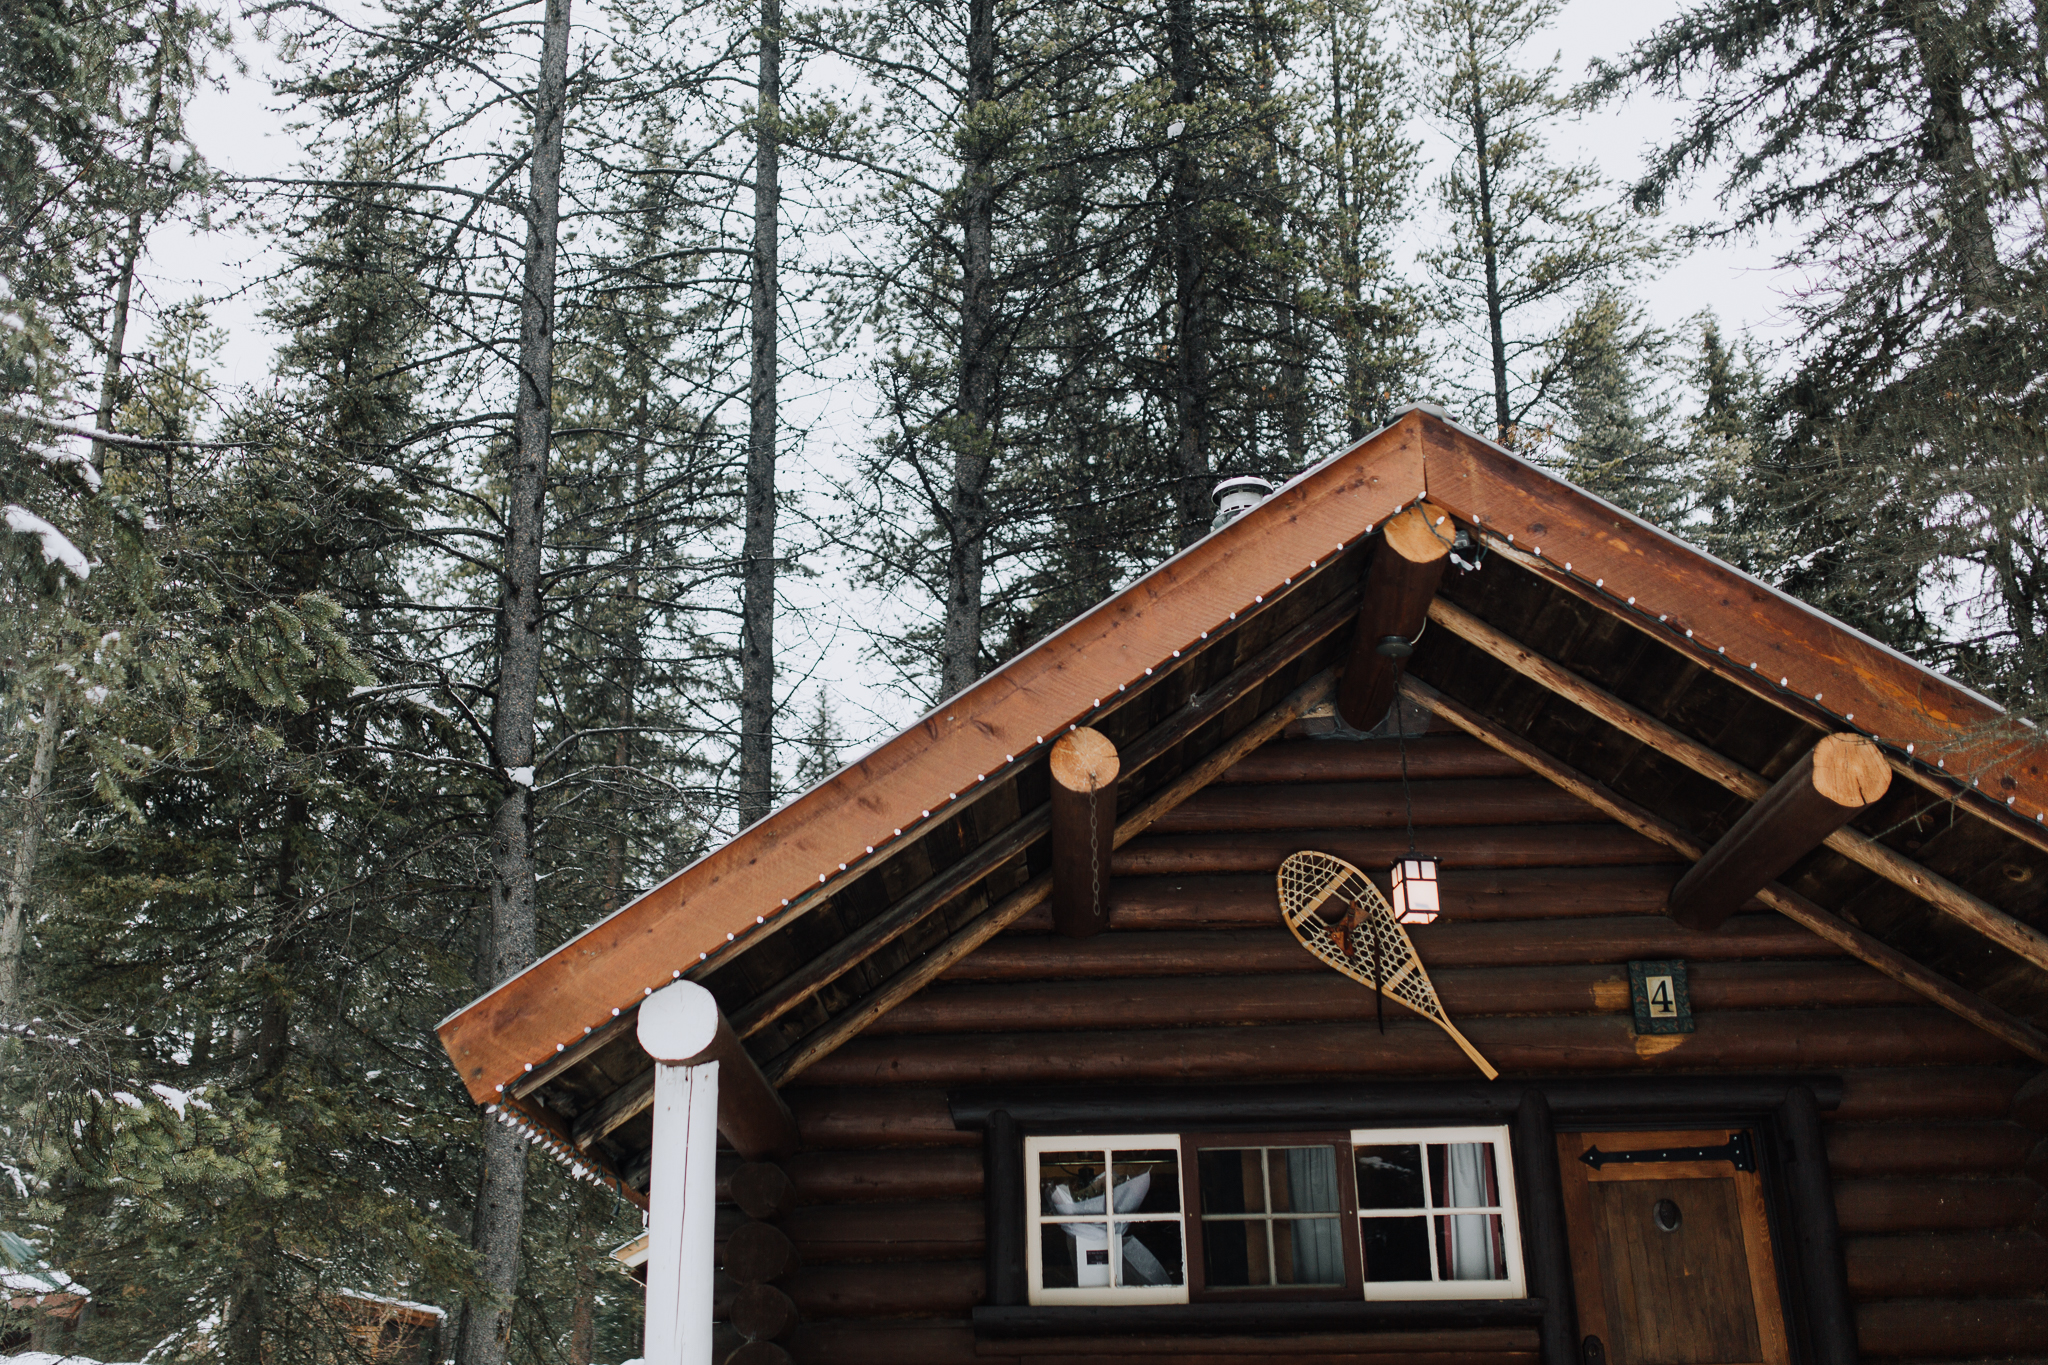 Cabin surrounded by trees with snowshoe above door at Storm Mountain Lodge winter wedding.